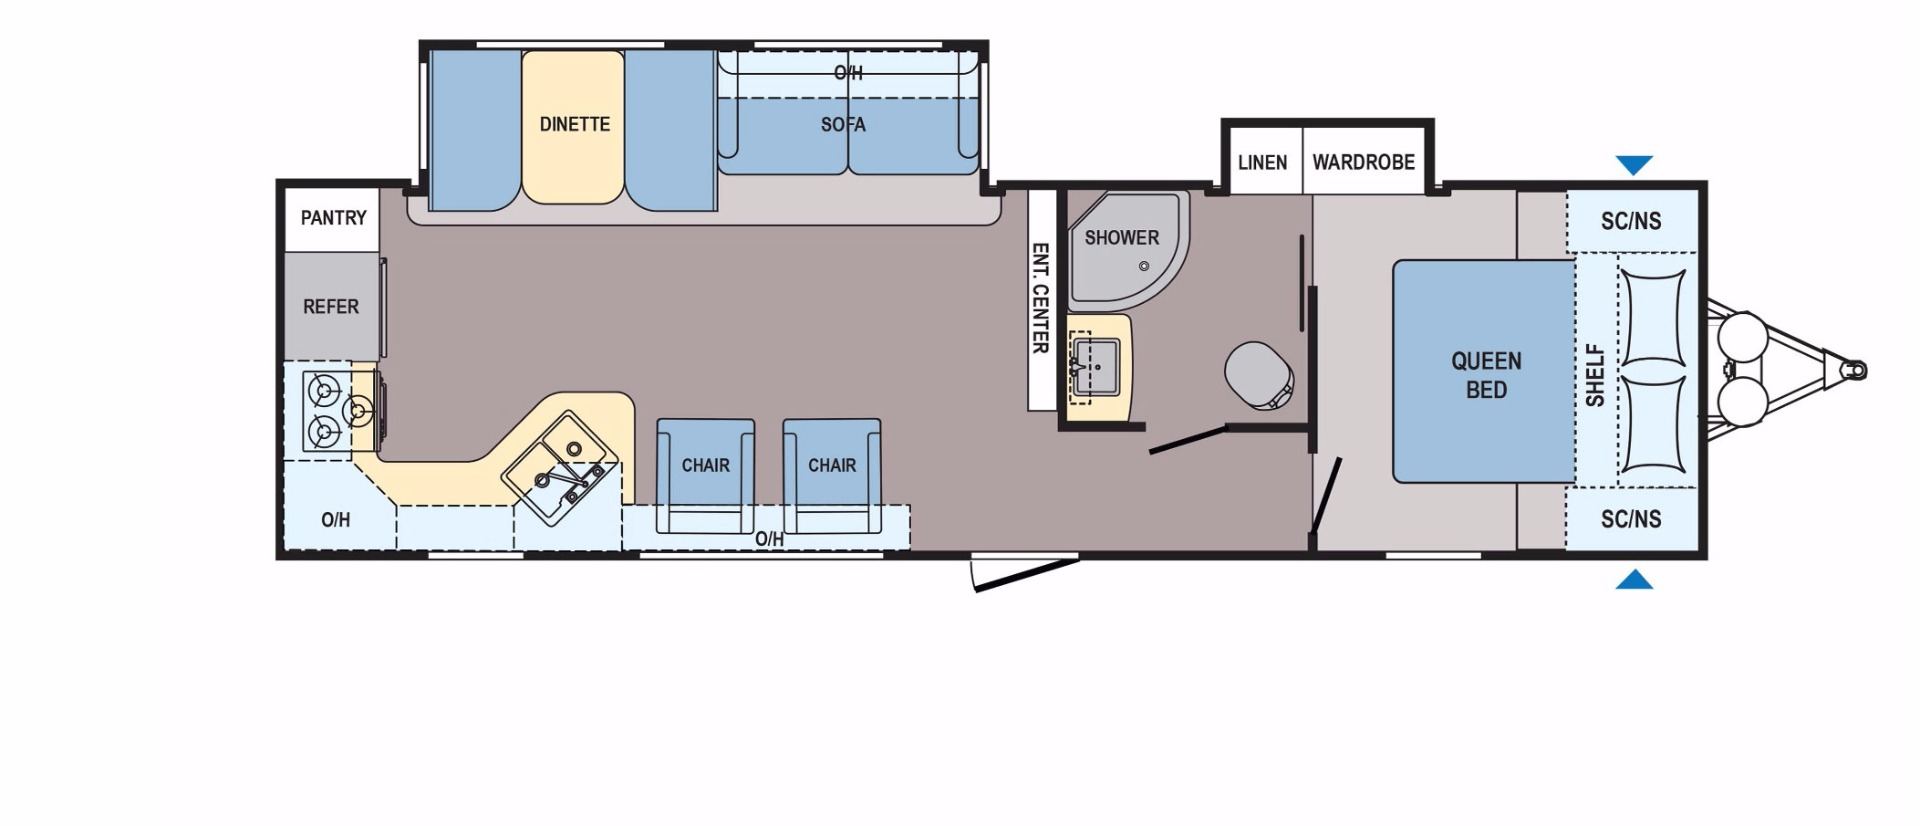 https://0901.nccdn.net/4_2/000/000/04b/787/floor-plan.jpg